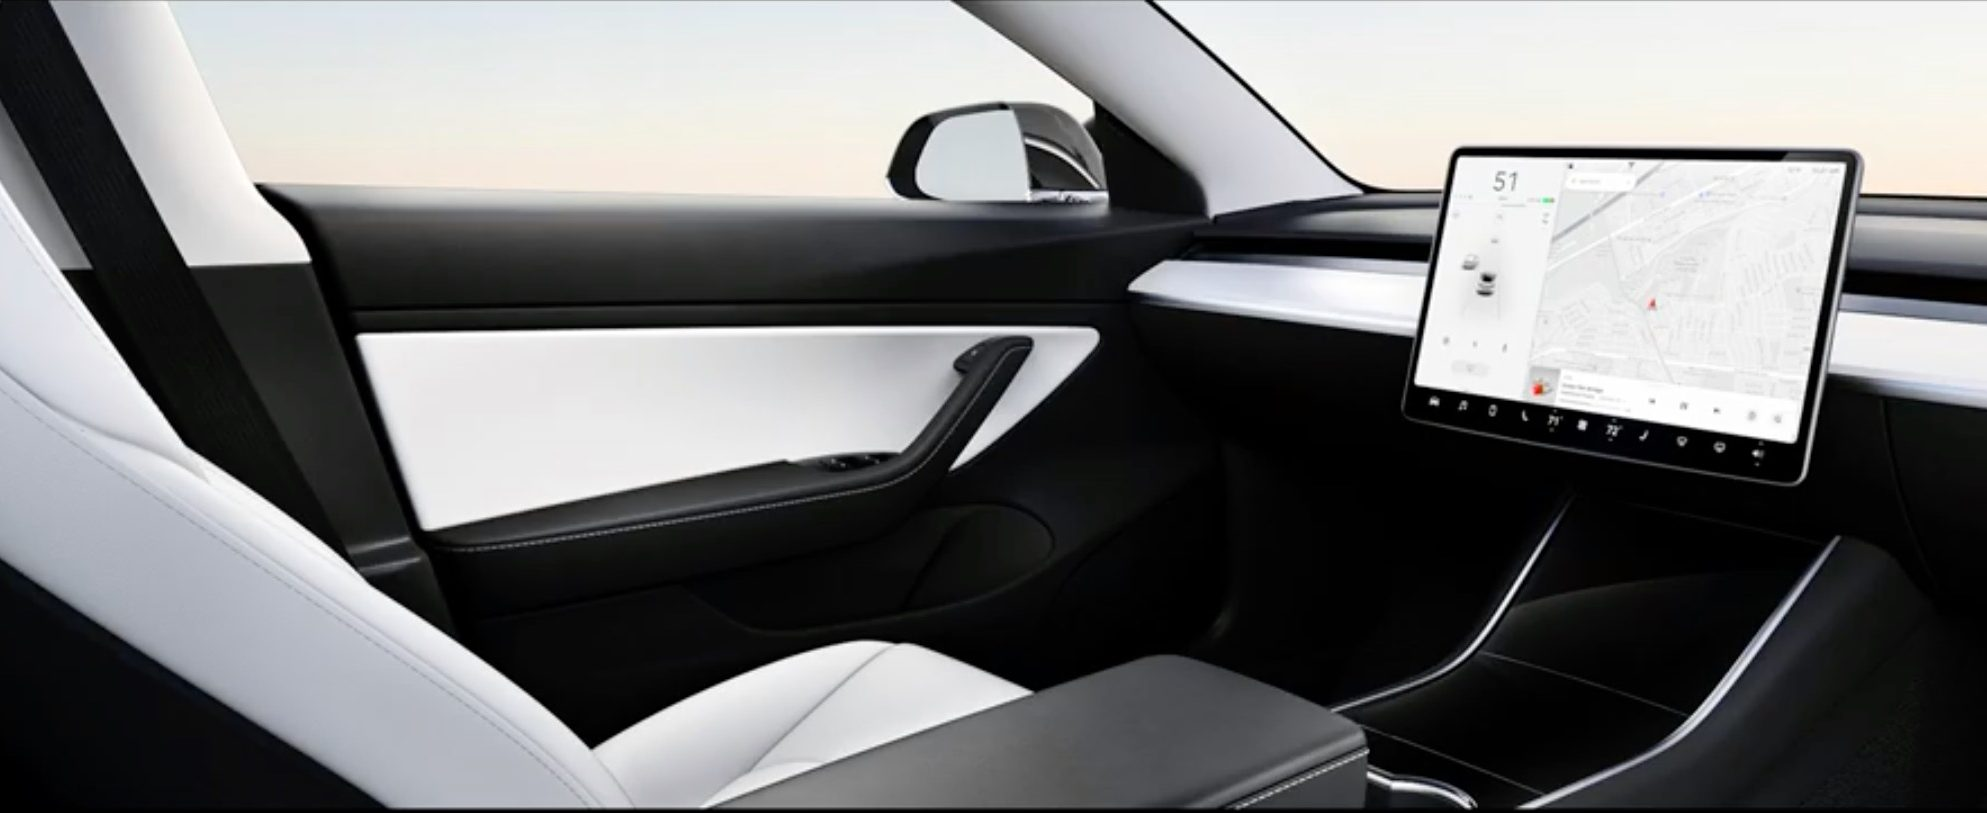 Tesla unveils car design without a steering wheel, coming within 2 years, says Elon Musk